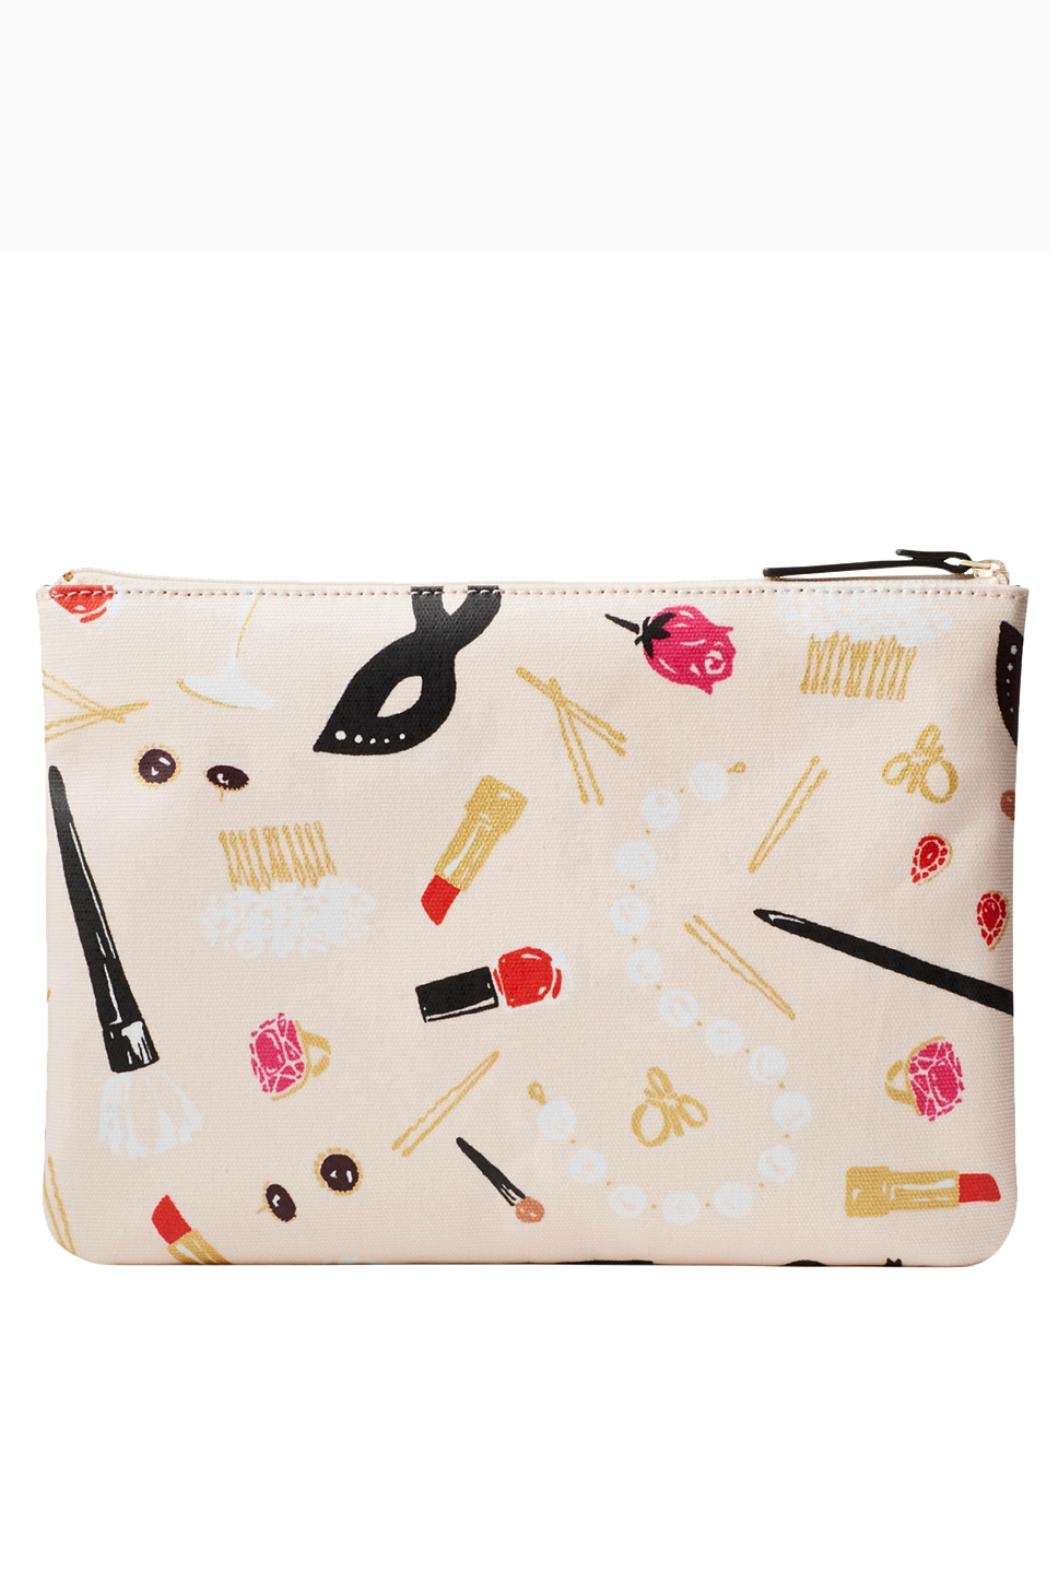 Kate Spade New York Gia Hop-To-It Cosmetic - Front Full Image